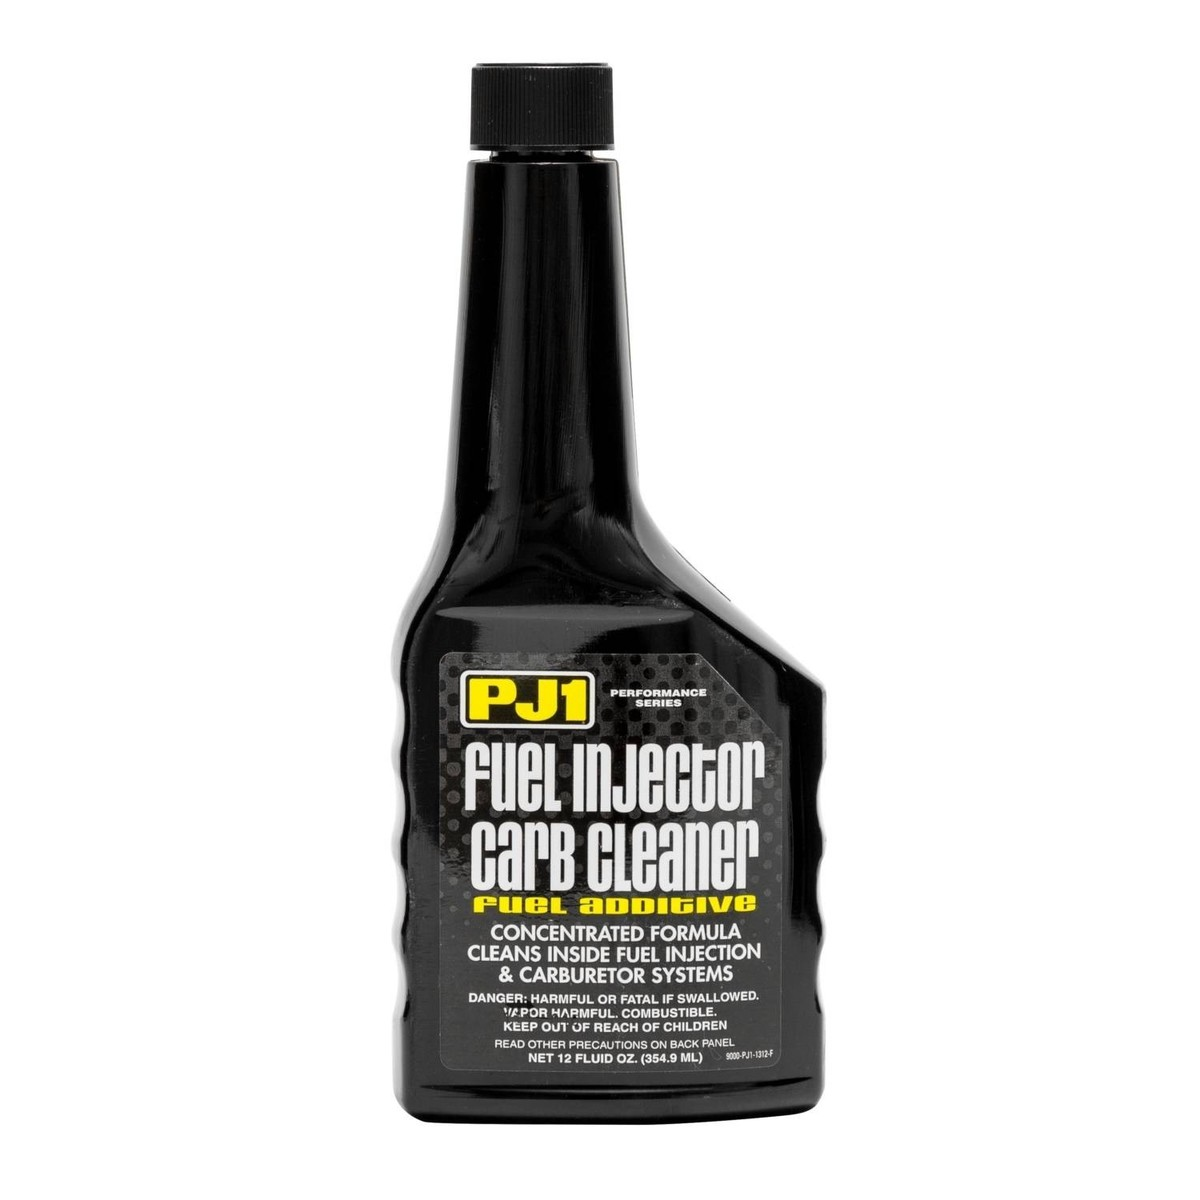 Does Fuel Injector Cleaner Work >> Fuel Injector And Carburetor Cleaner Does It Work